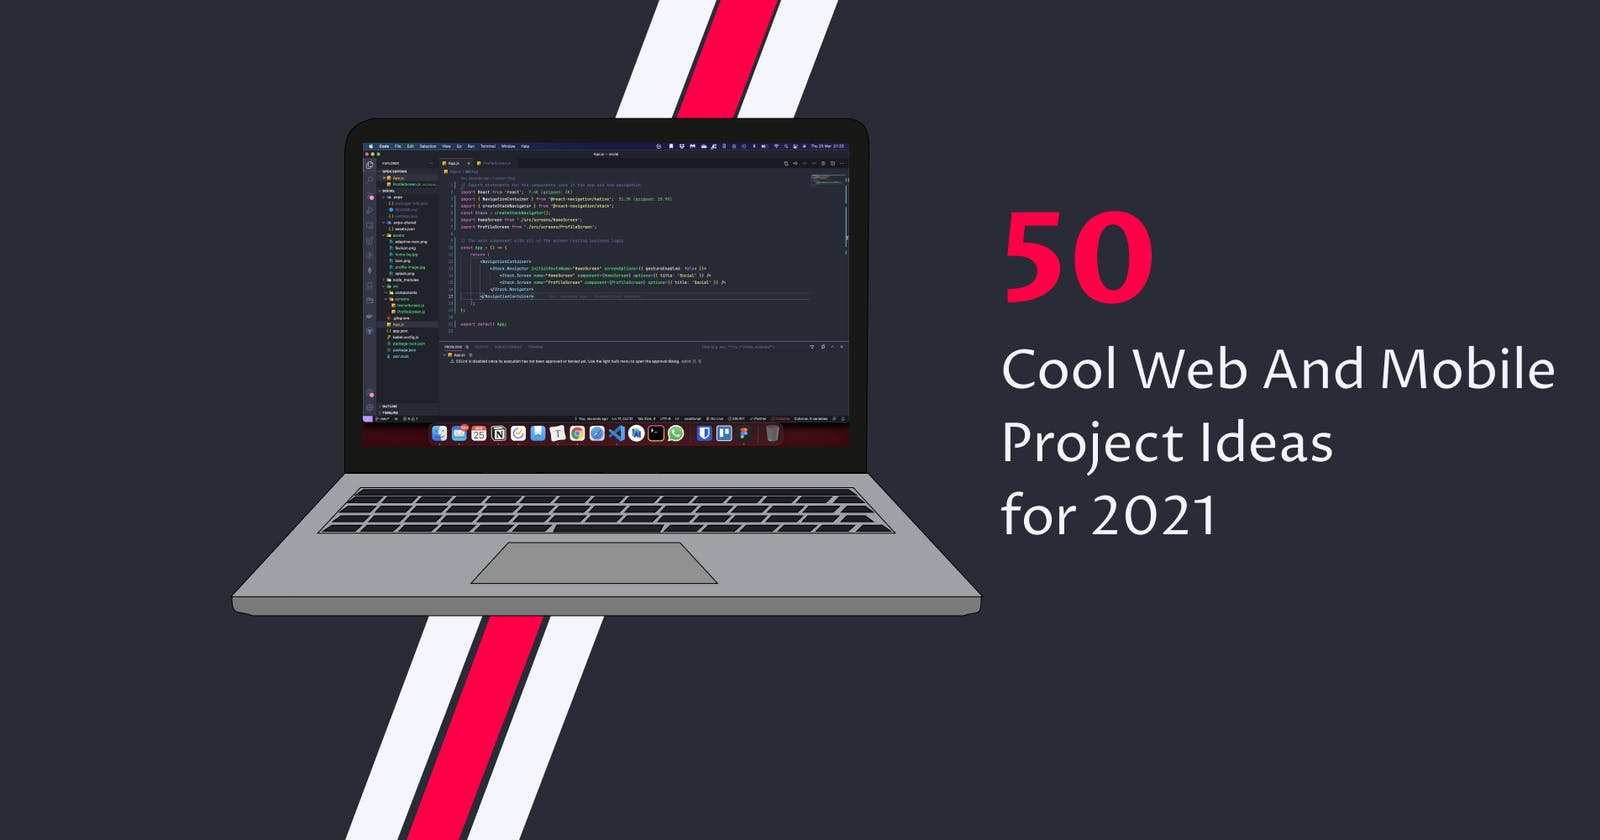 50 Cool Web And Mobile Project Ideas for 2021